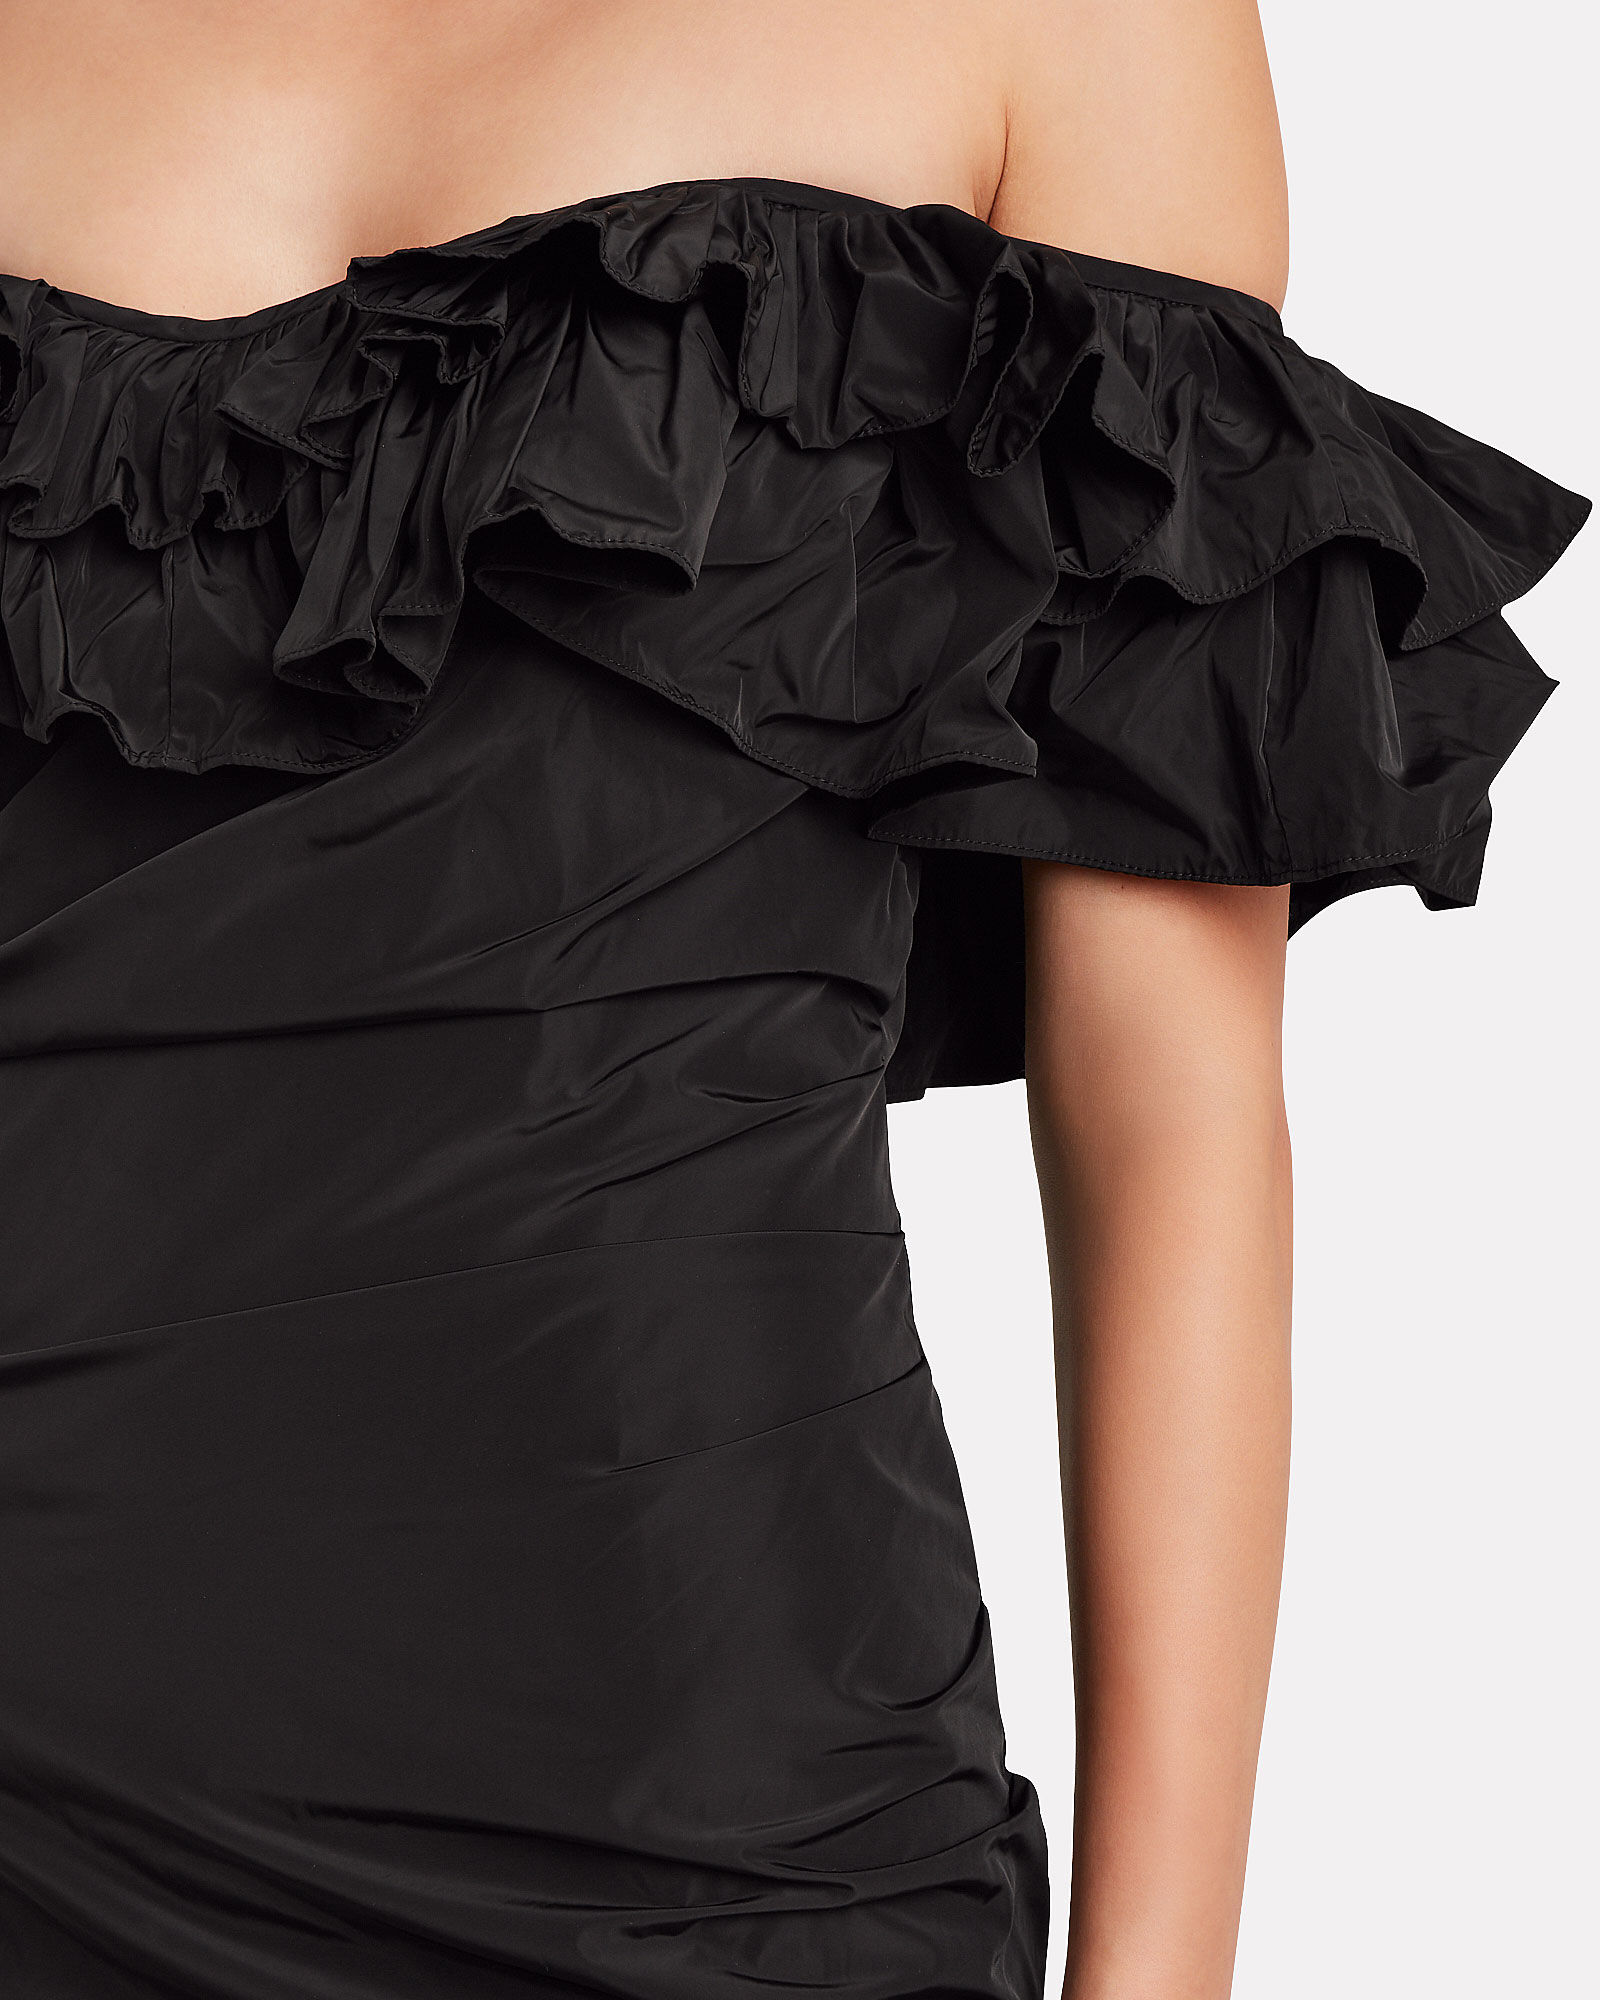 Benicia Ruffled Party Dress, BLACK, hi-res